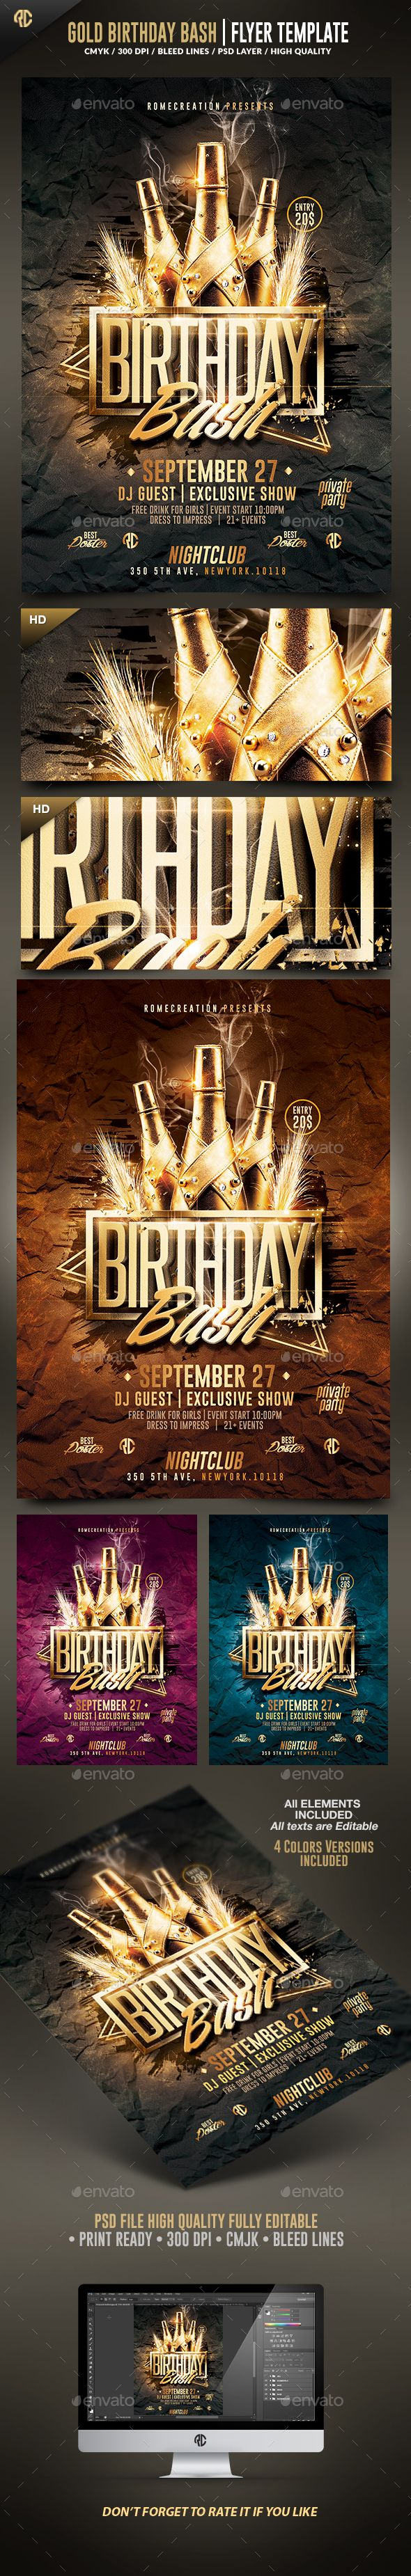 Poster design hd - Gold Birthday Bash Flyer Template Psd Design Download Http Graphicriver